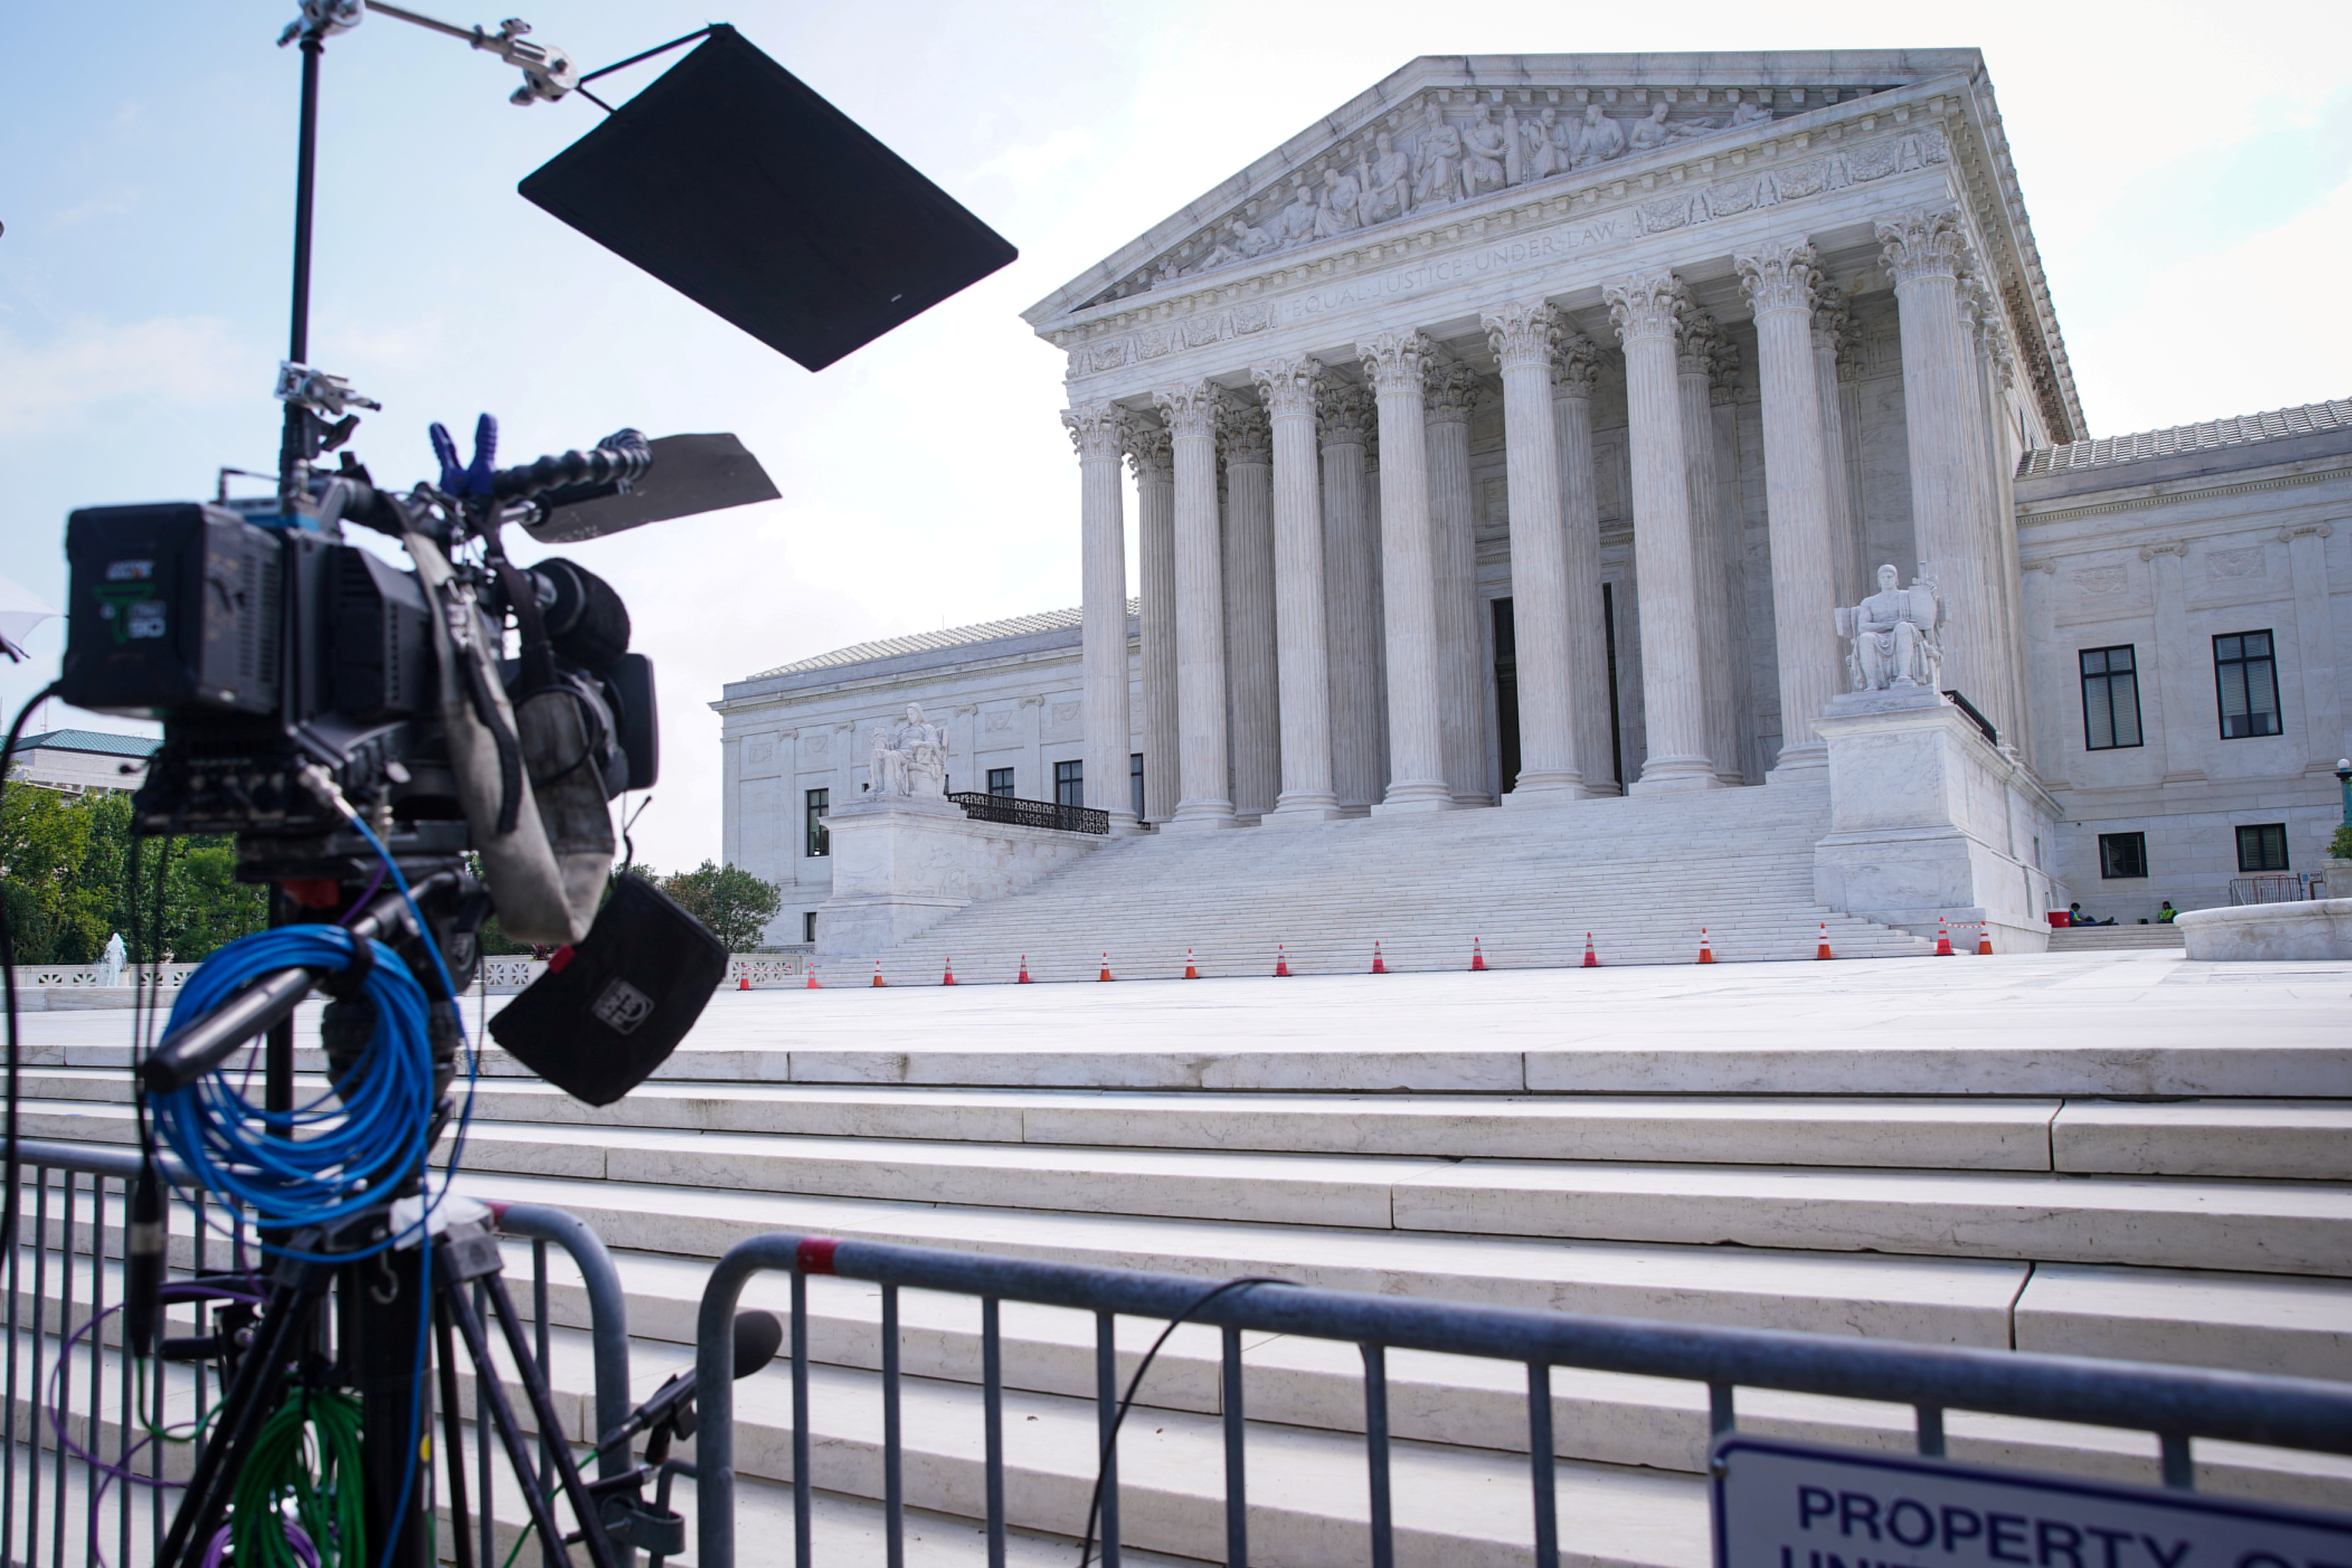 The Supreme Court building is seen in Washington, U.S., June 21, 2021. REUTERS/Sarah Silbiger